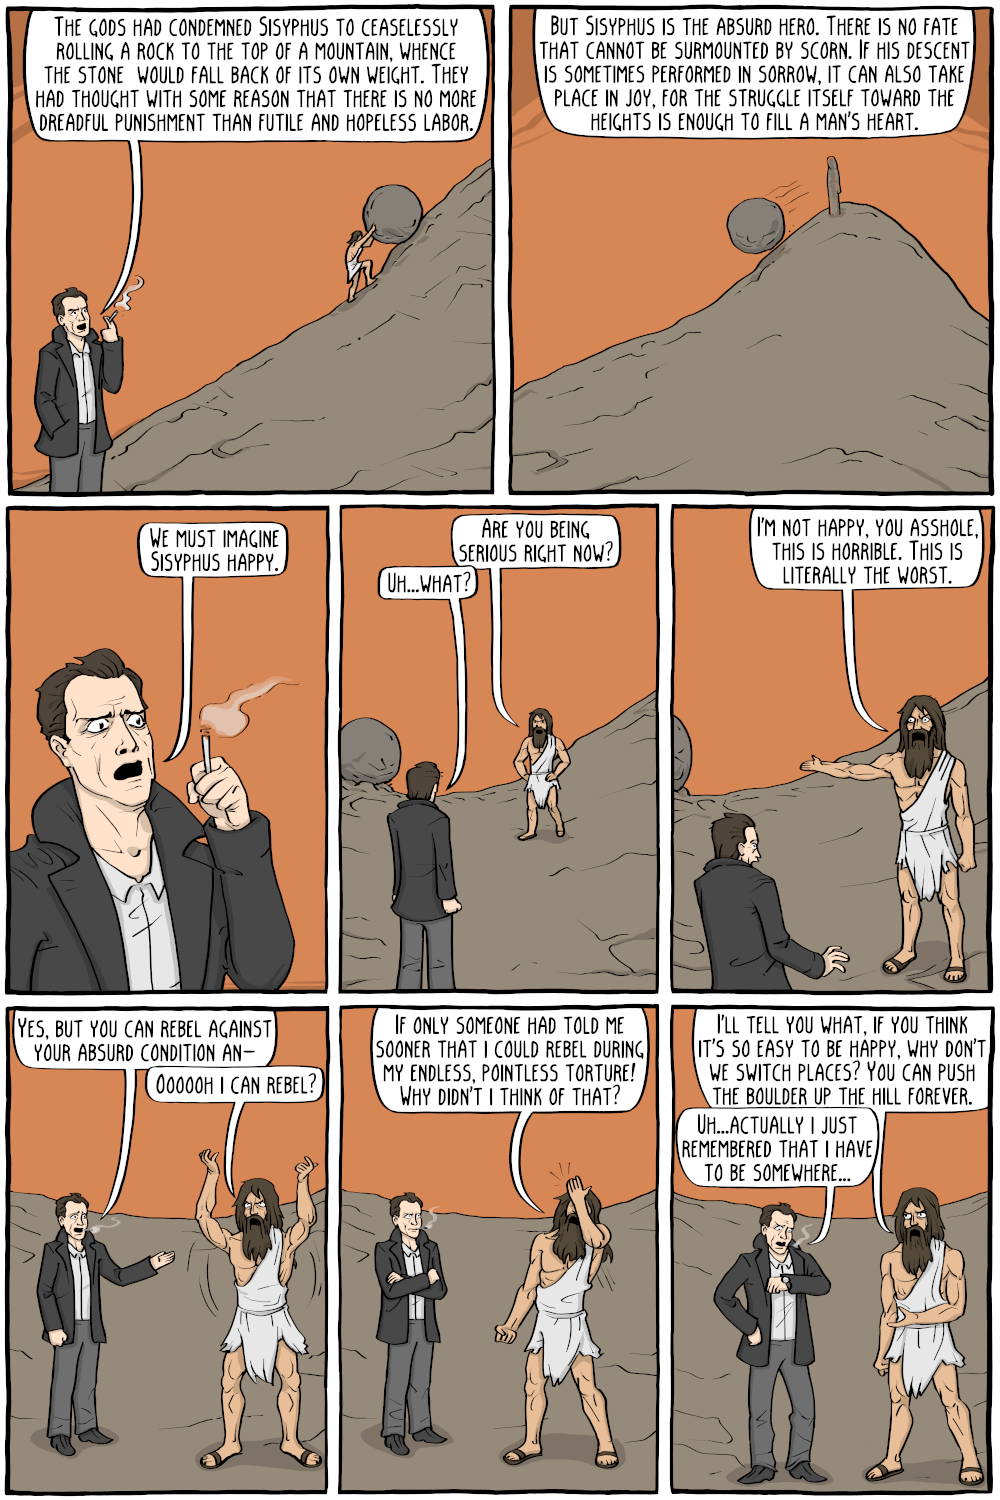 We Must Imagine Sisyphus as having Met Camus - Existential Comics